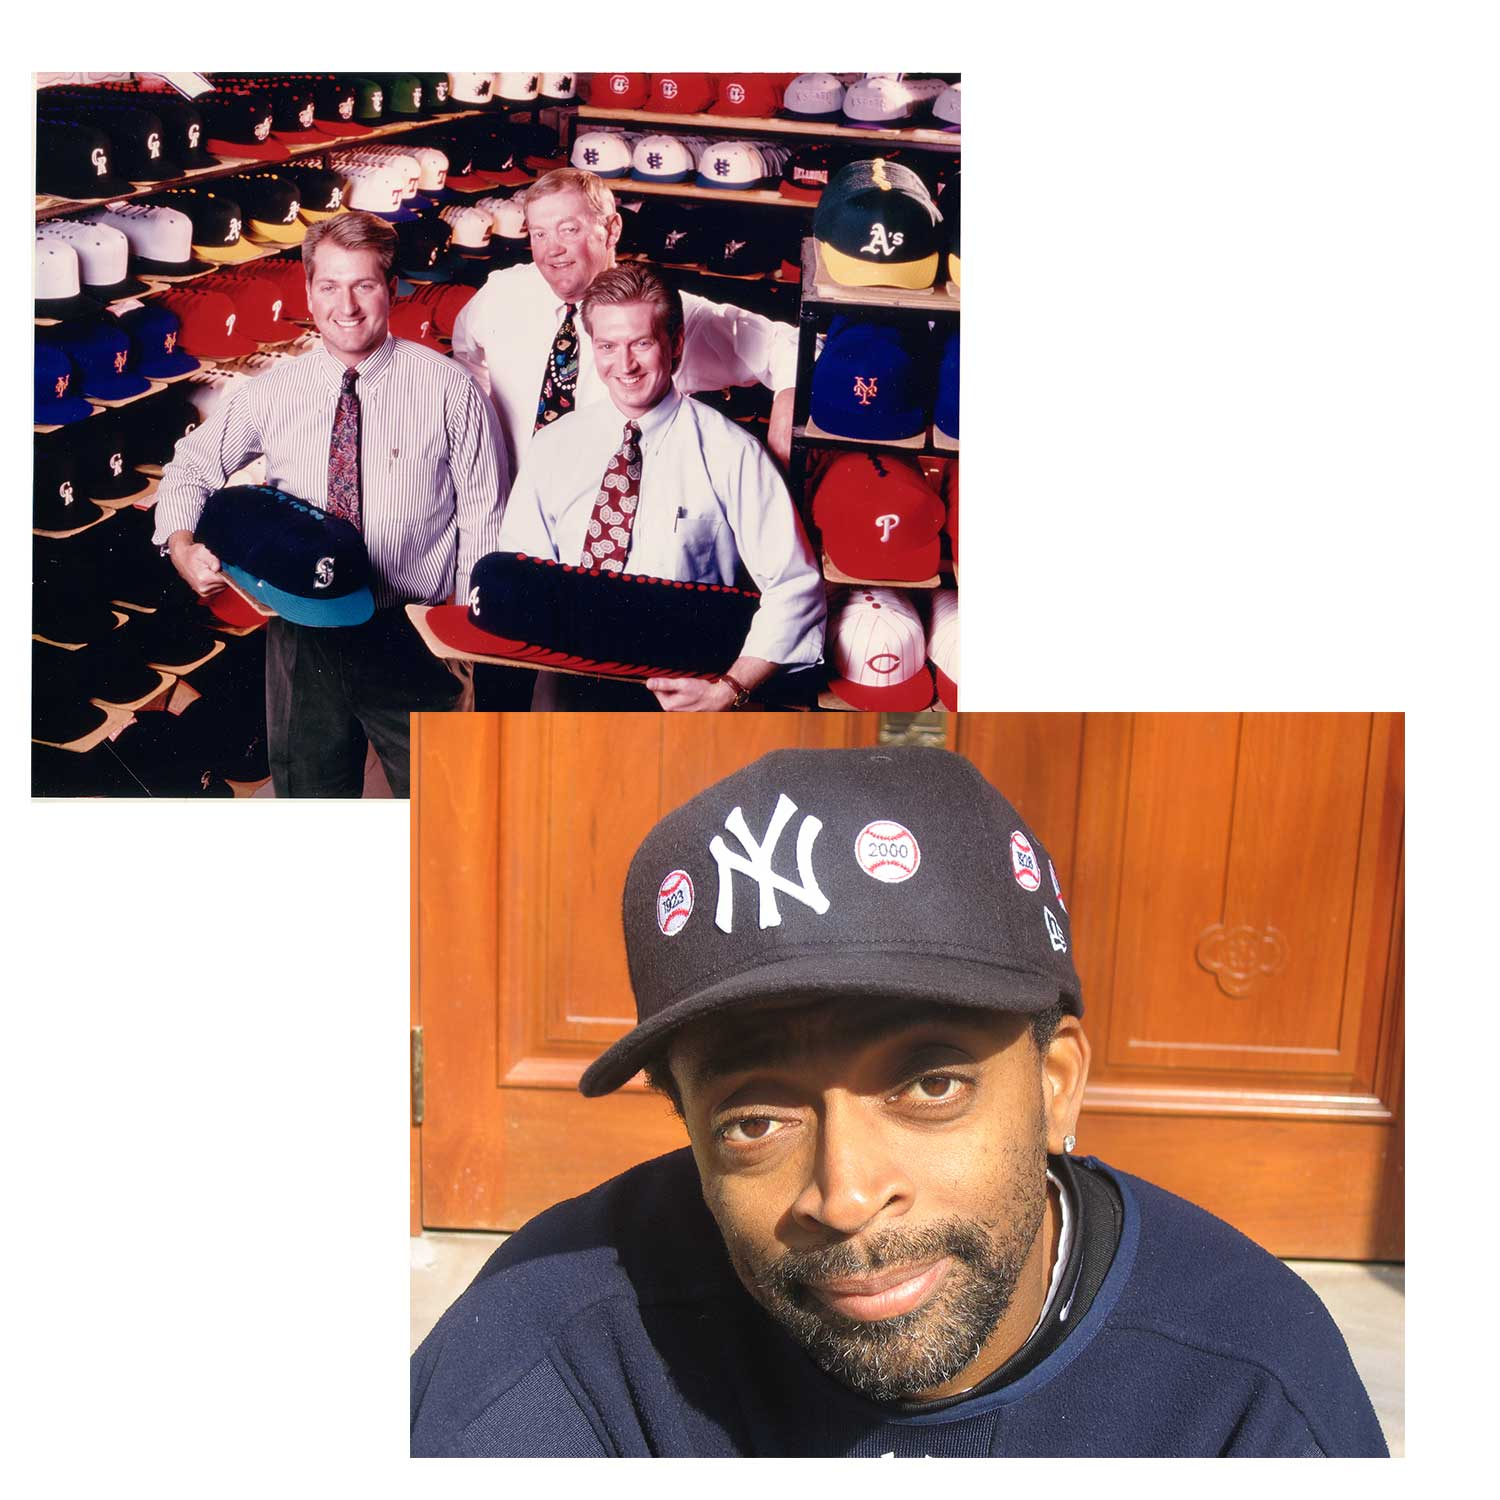 Spike Lee 1990s New Era Cap